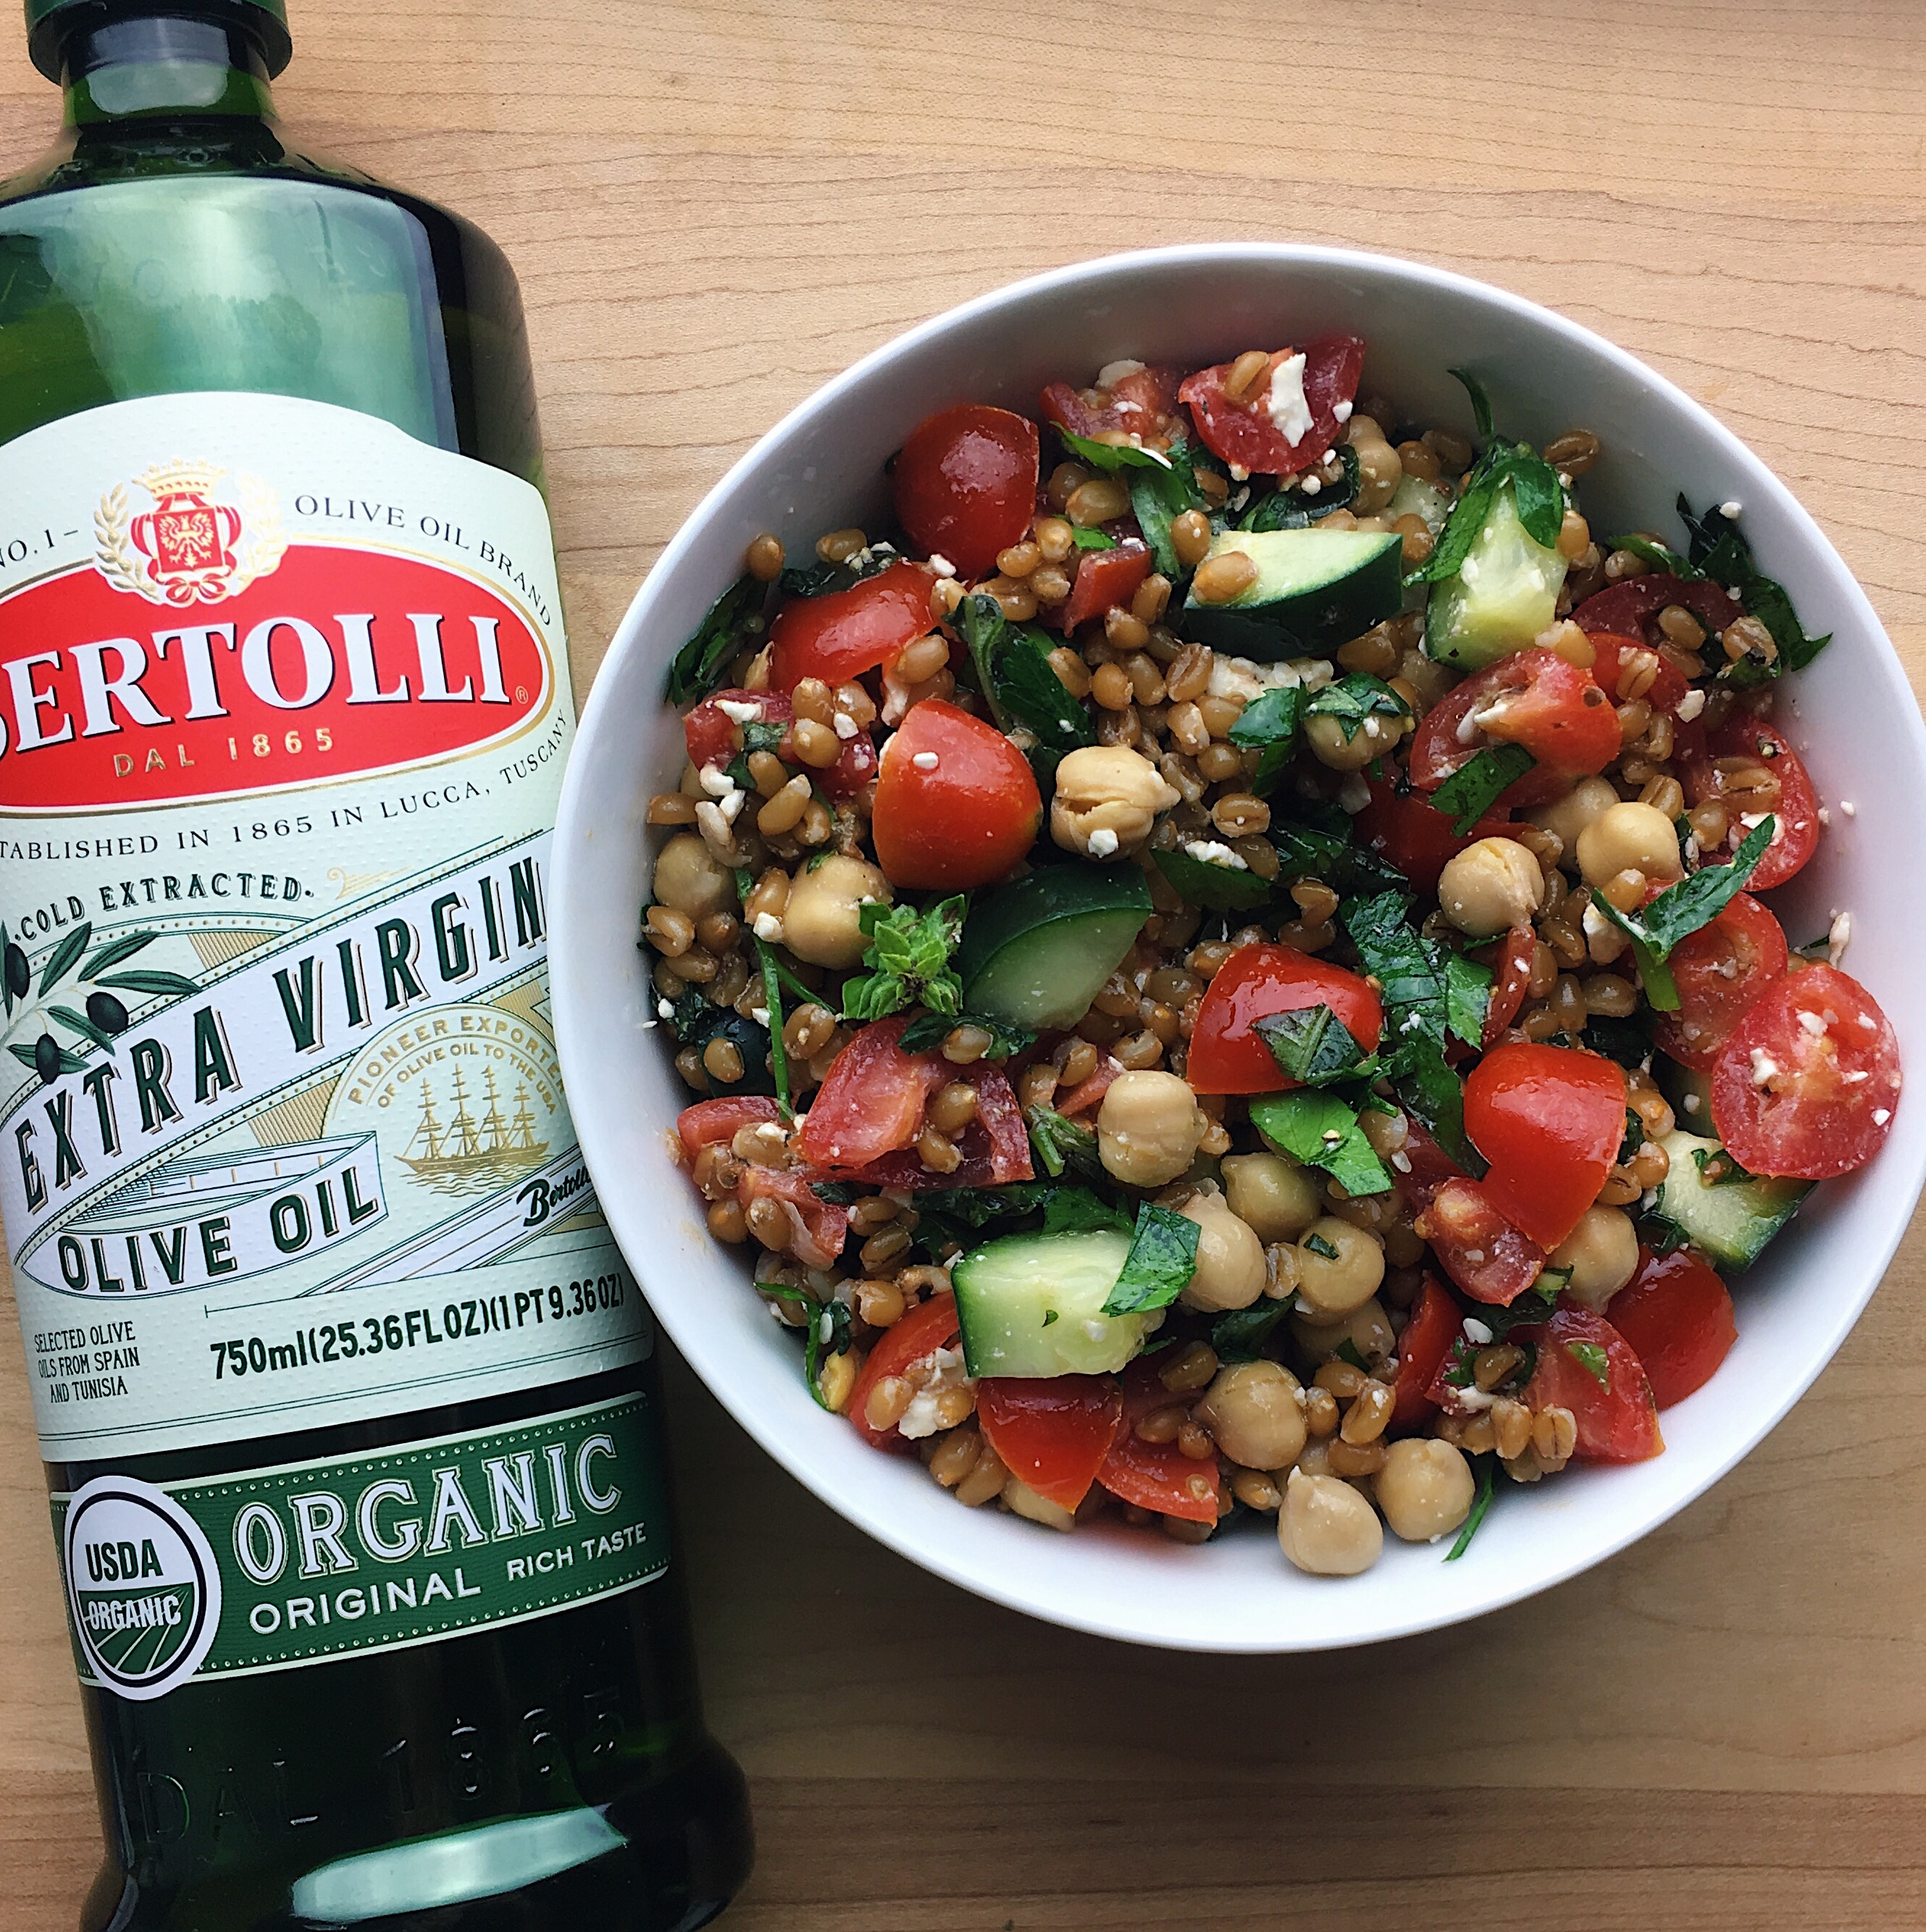 Bertolli Extra Virgin Olive Oil with Healthy Salad Bowl